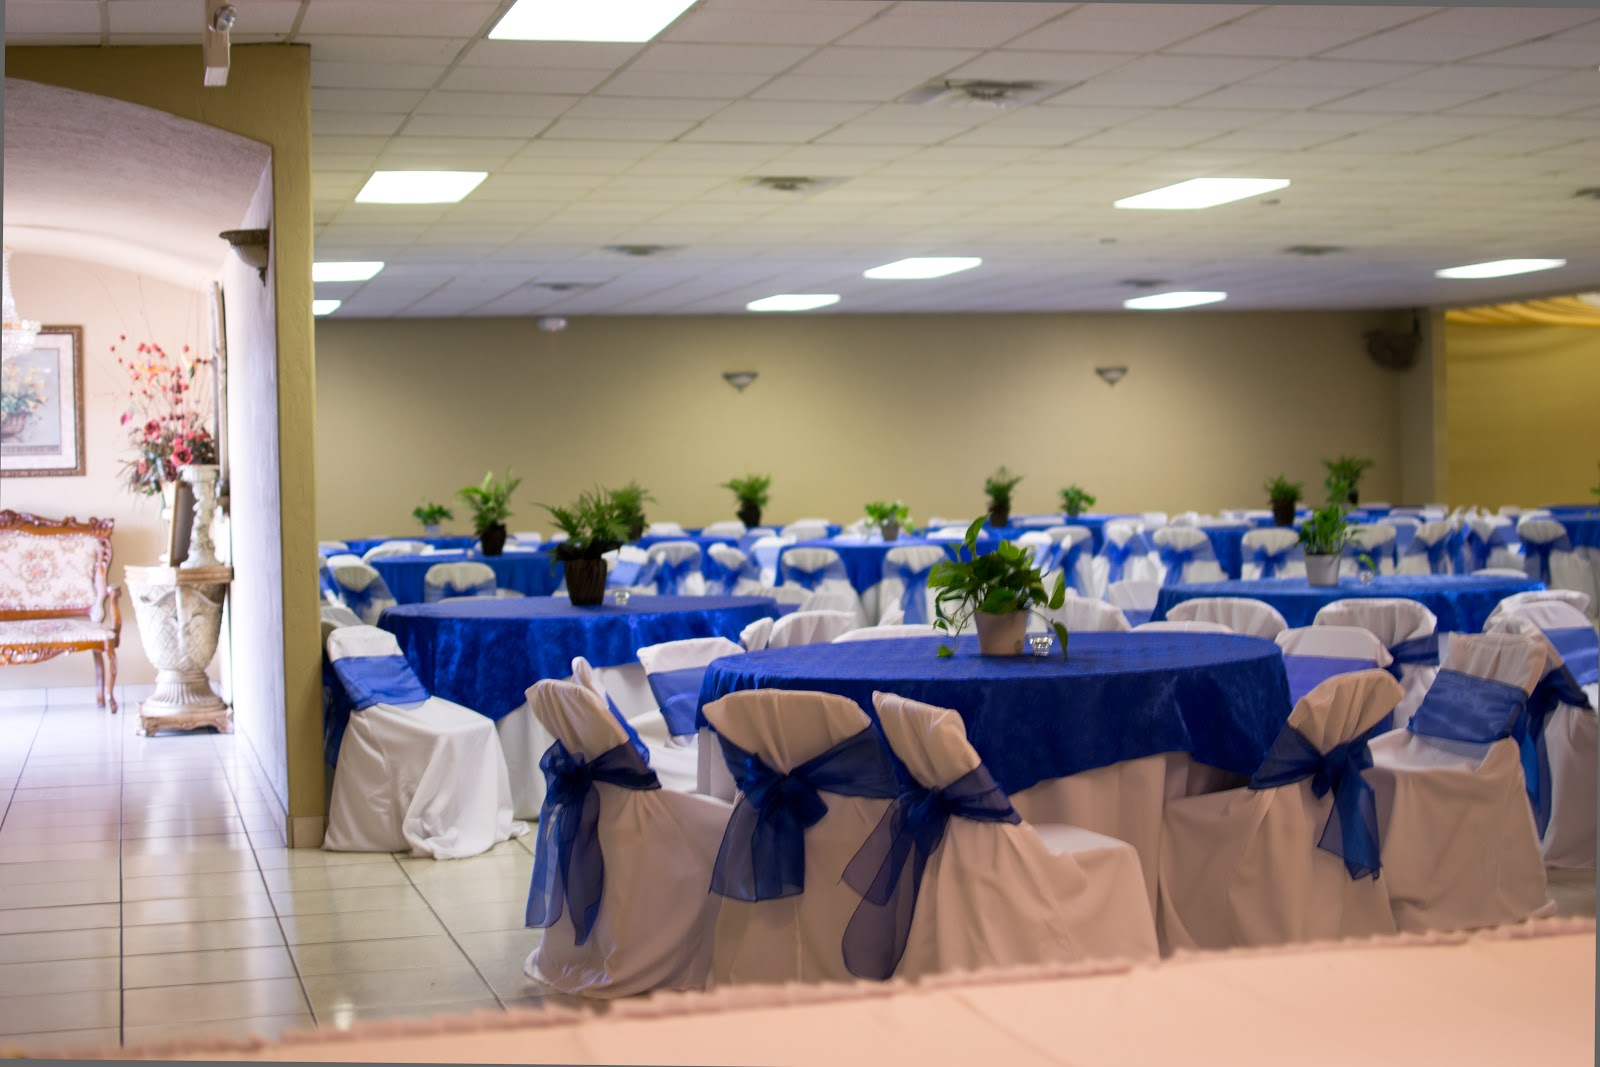 Rincon real hall decorations wedding anniversary reception for Wedding banquet decorations